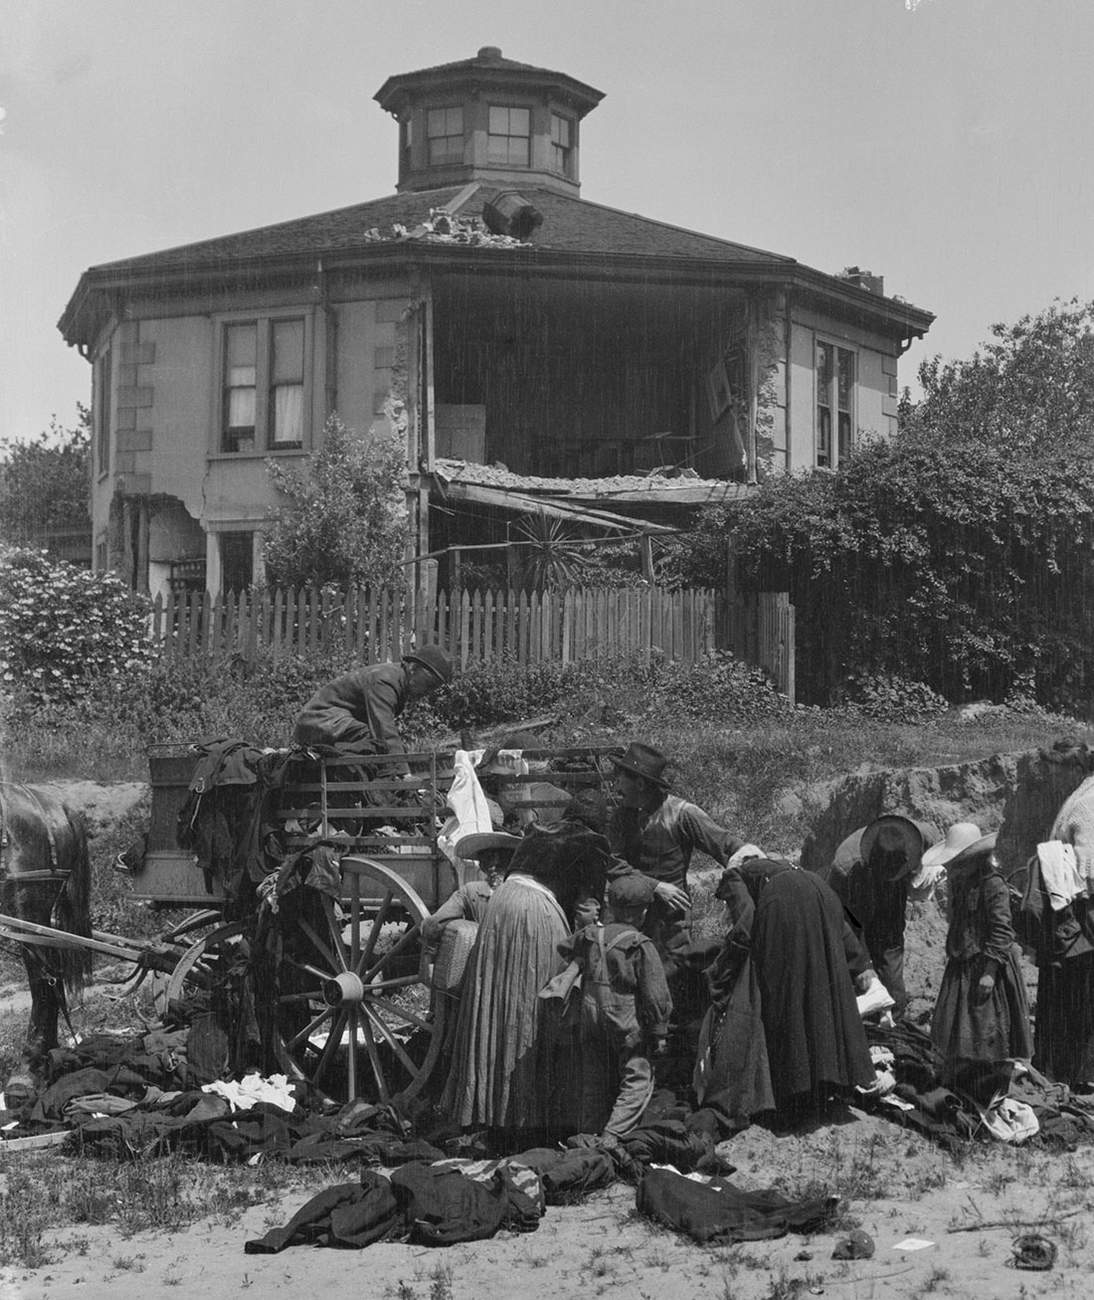 Arnold Genthe,Untitled (Cavagnaro House, Gough and Union Streets, San Francisco), 1906. Cellulose nitrate negative, 5 1/4 x 3 1/2 in. (13.3 x 8.9 cm. Fine Arts Museums of San Francisco, Museum purchase, James D. Phelan Bequest Fund, 1943.407.138.1